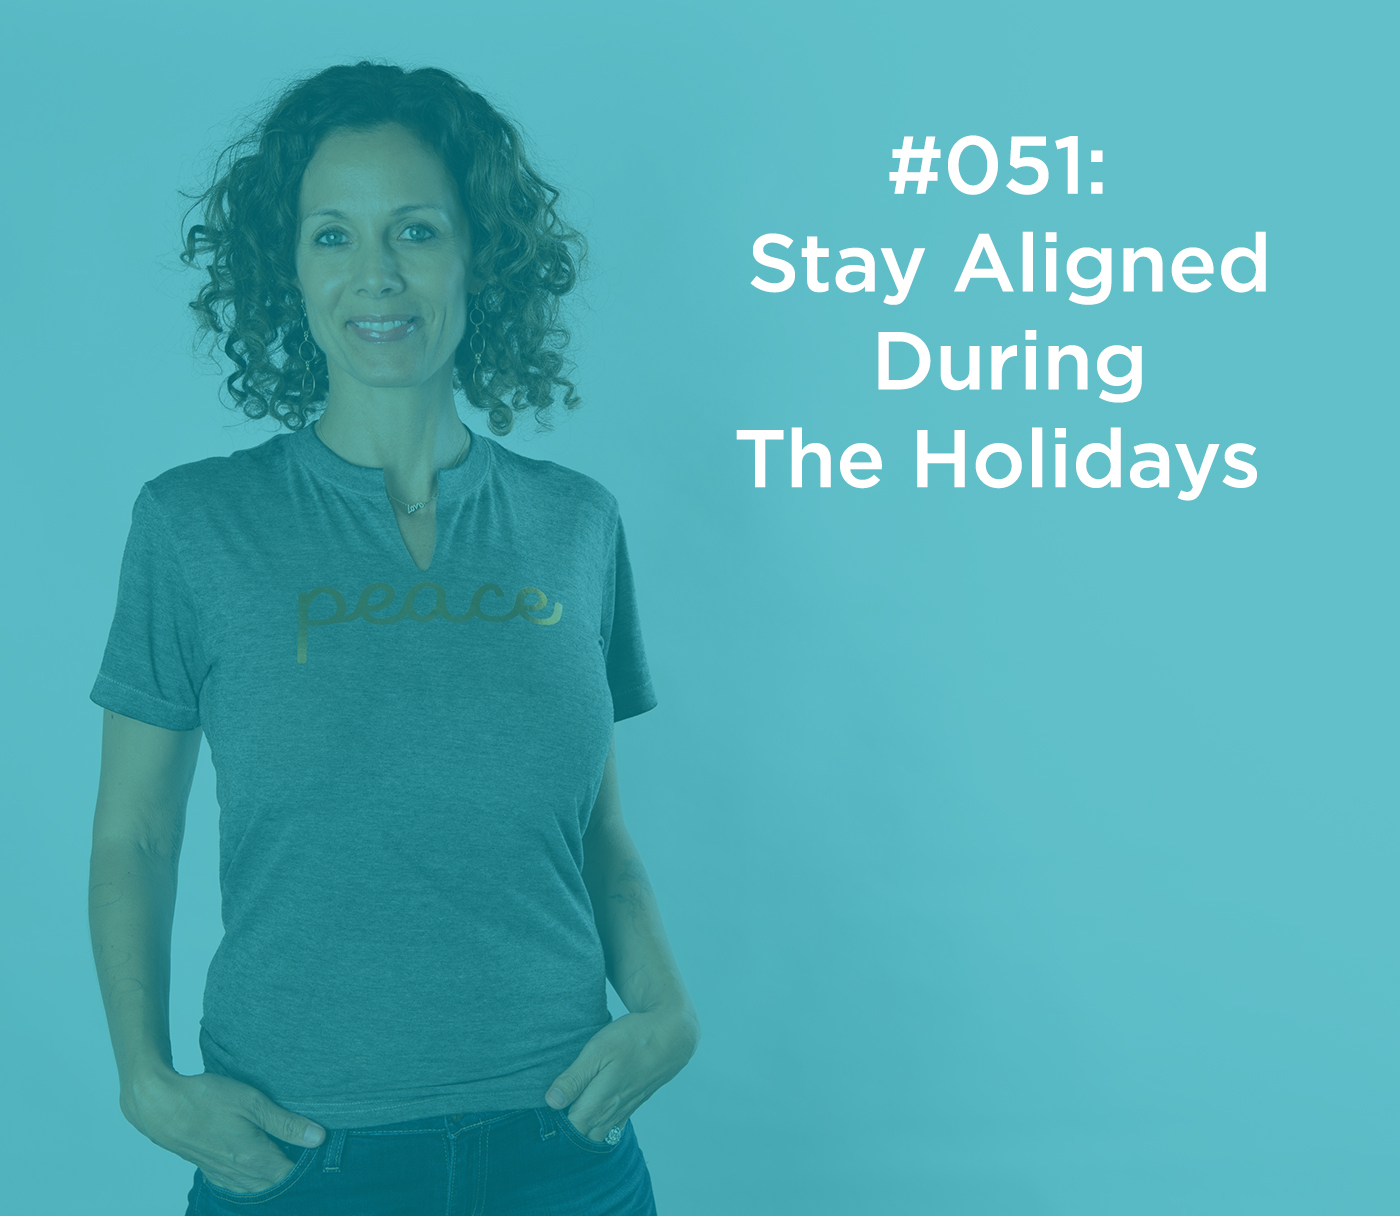 Stay Aligned During The Holidays